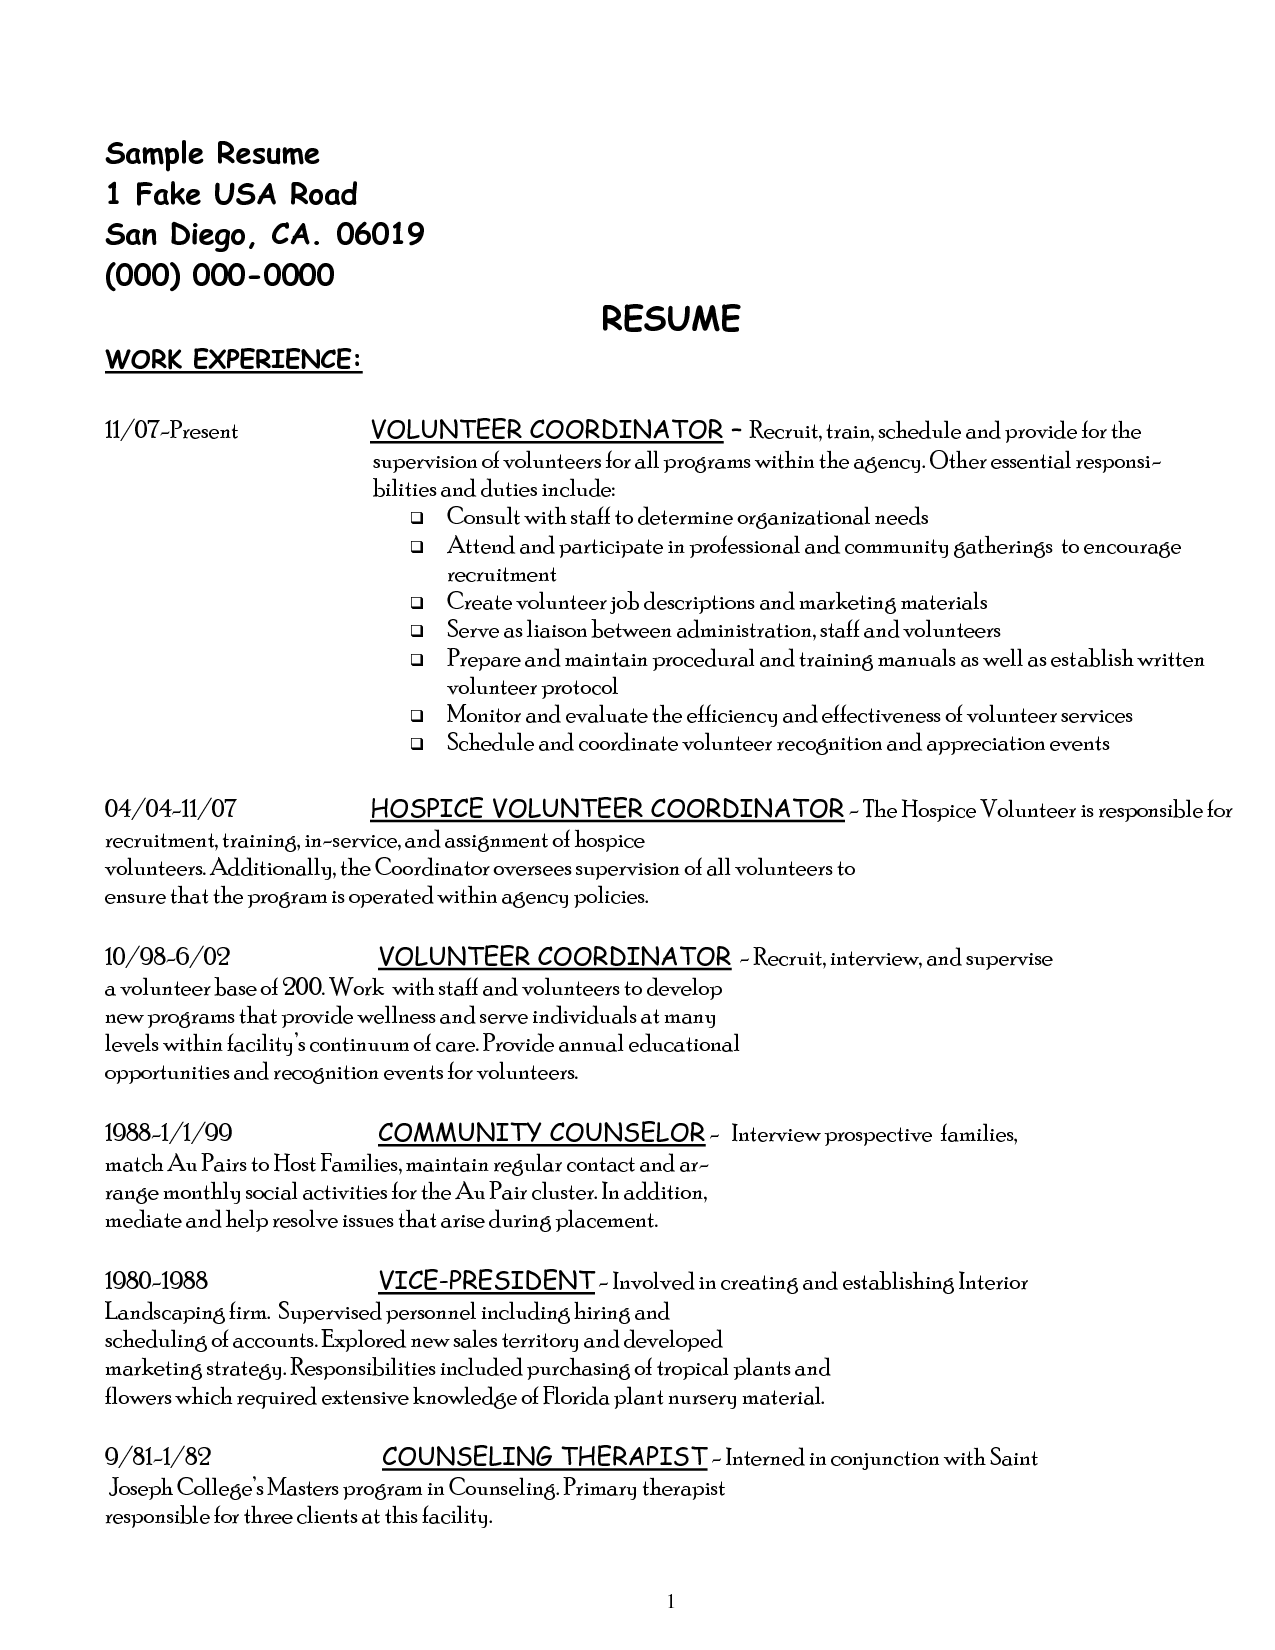 Cv Template Volunteer Work Custovolunteer Work On Resume Application